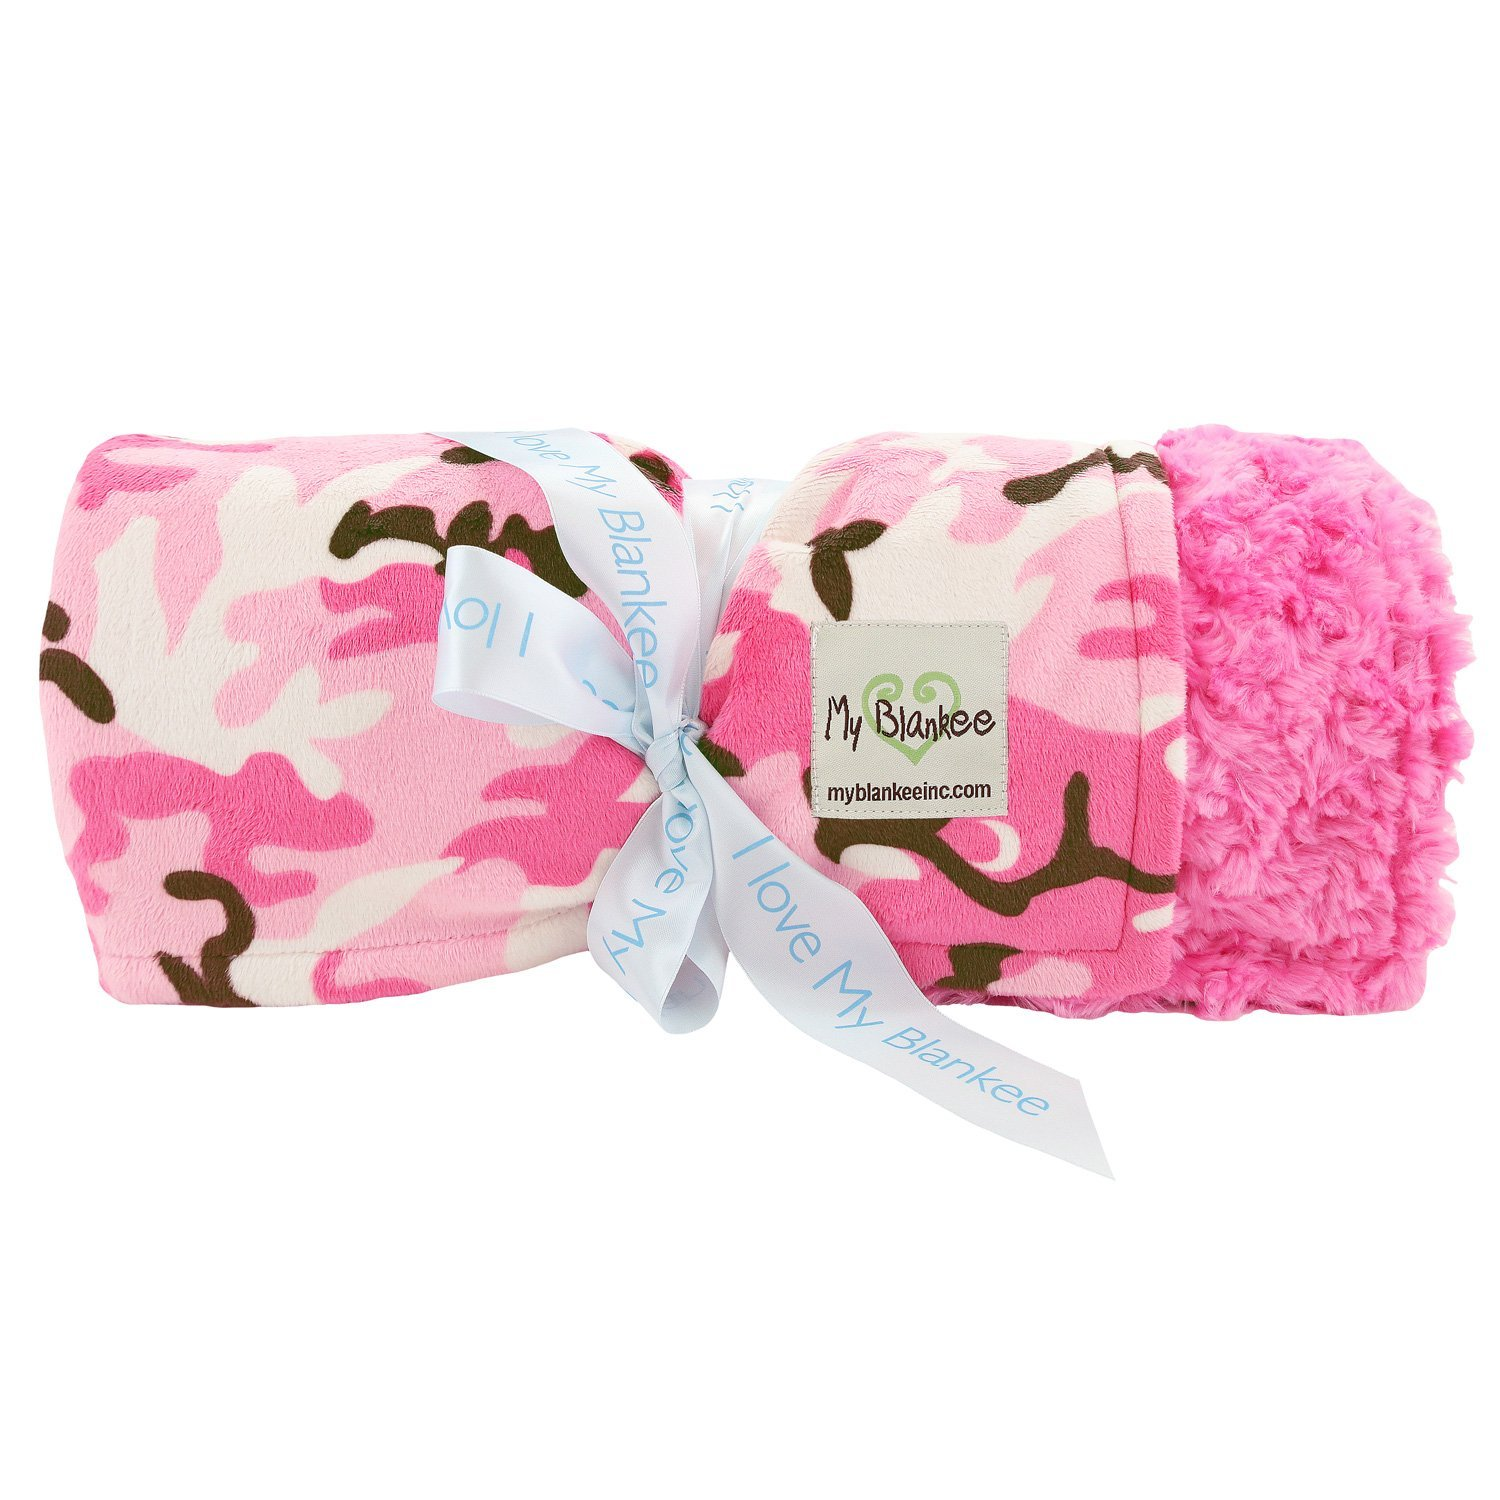 My Blankee Pink Camouflage W/ Luxe Snail Back Throw Blank...